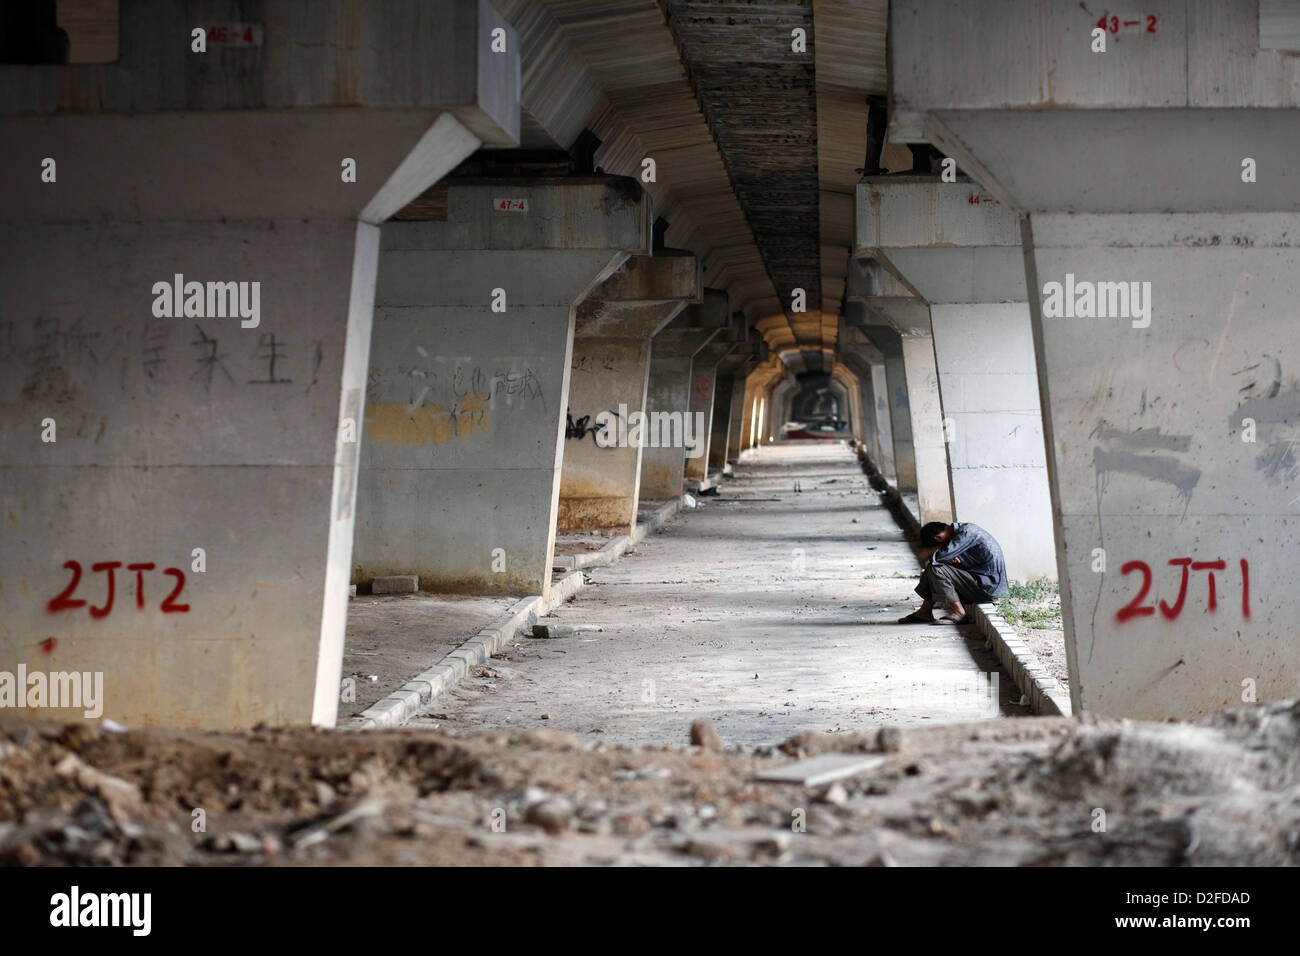 Shenzhen, China, a man sits hunched under a Strassenbruecke - Stock Image